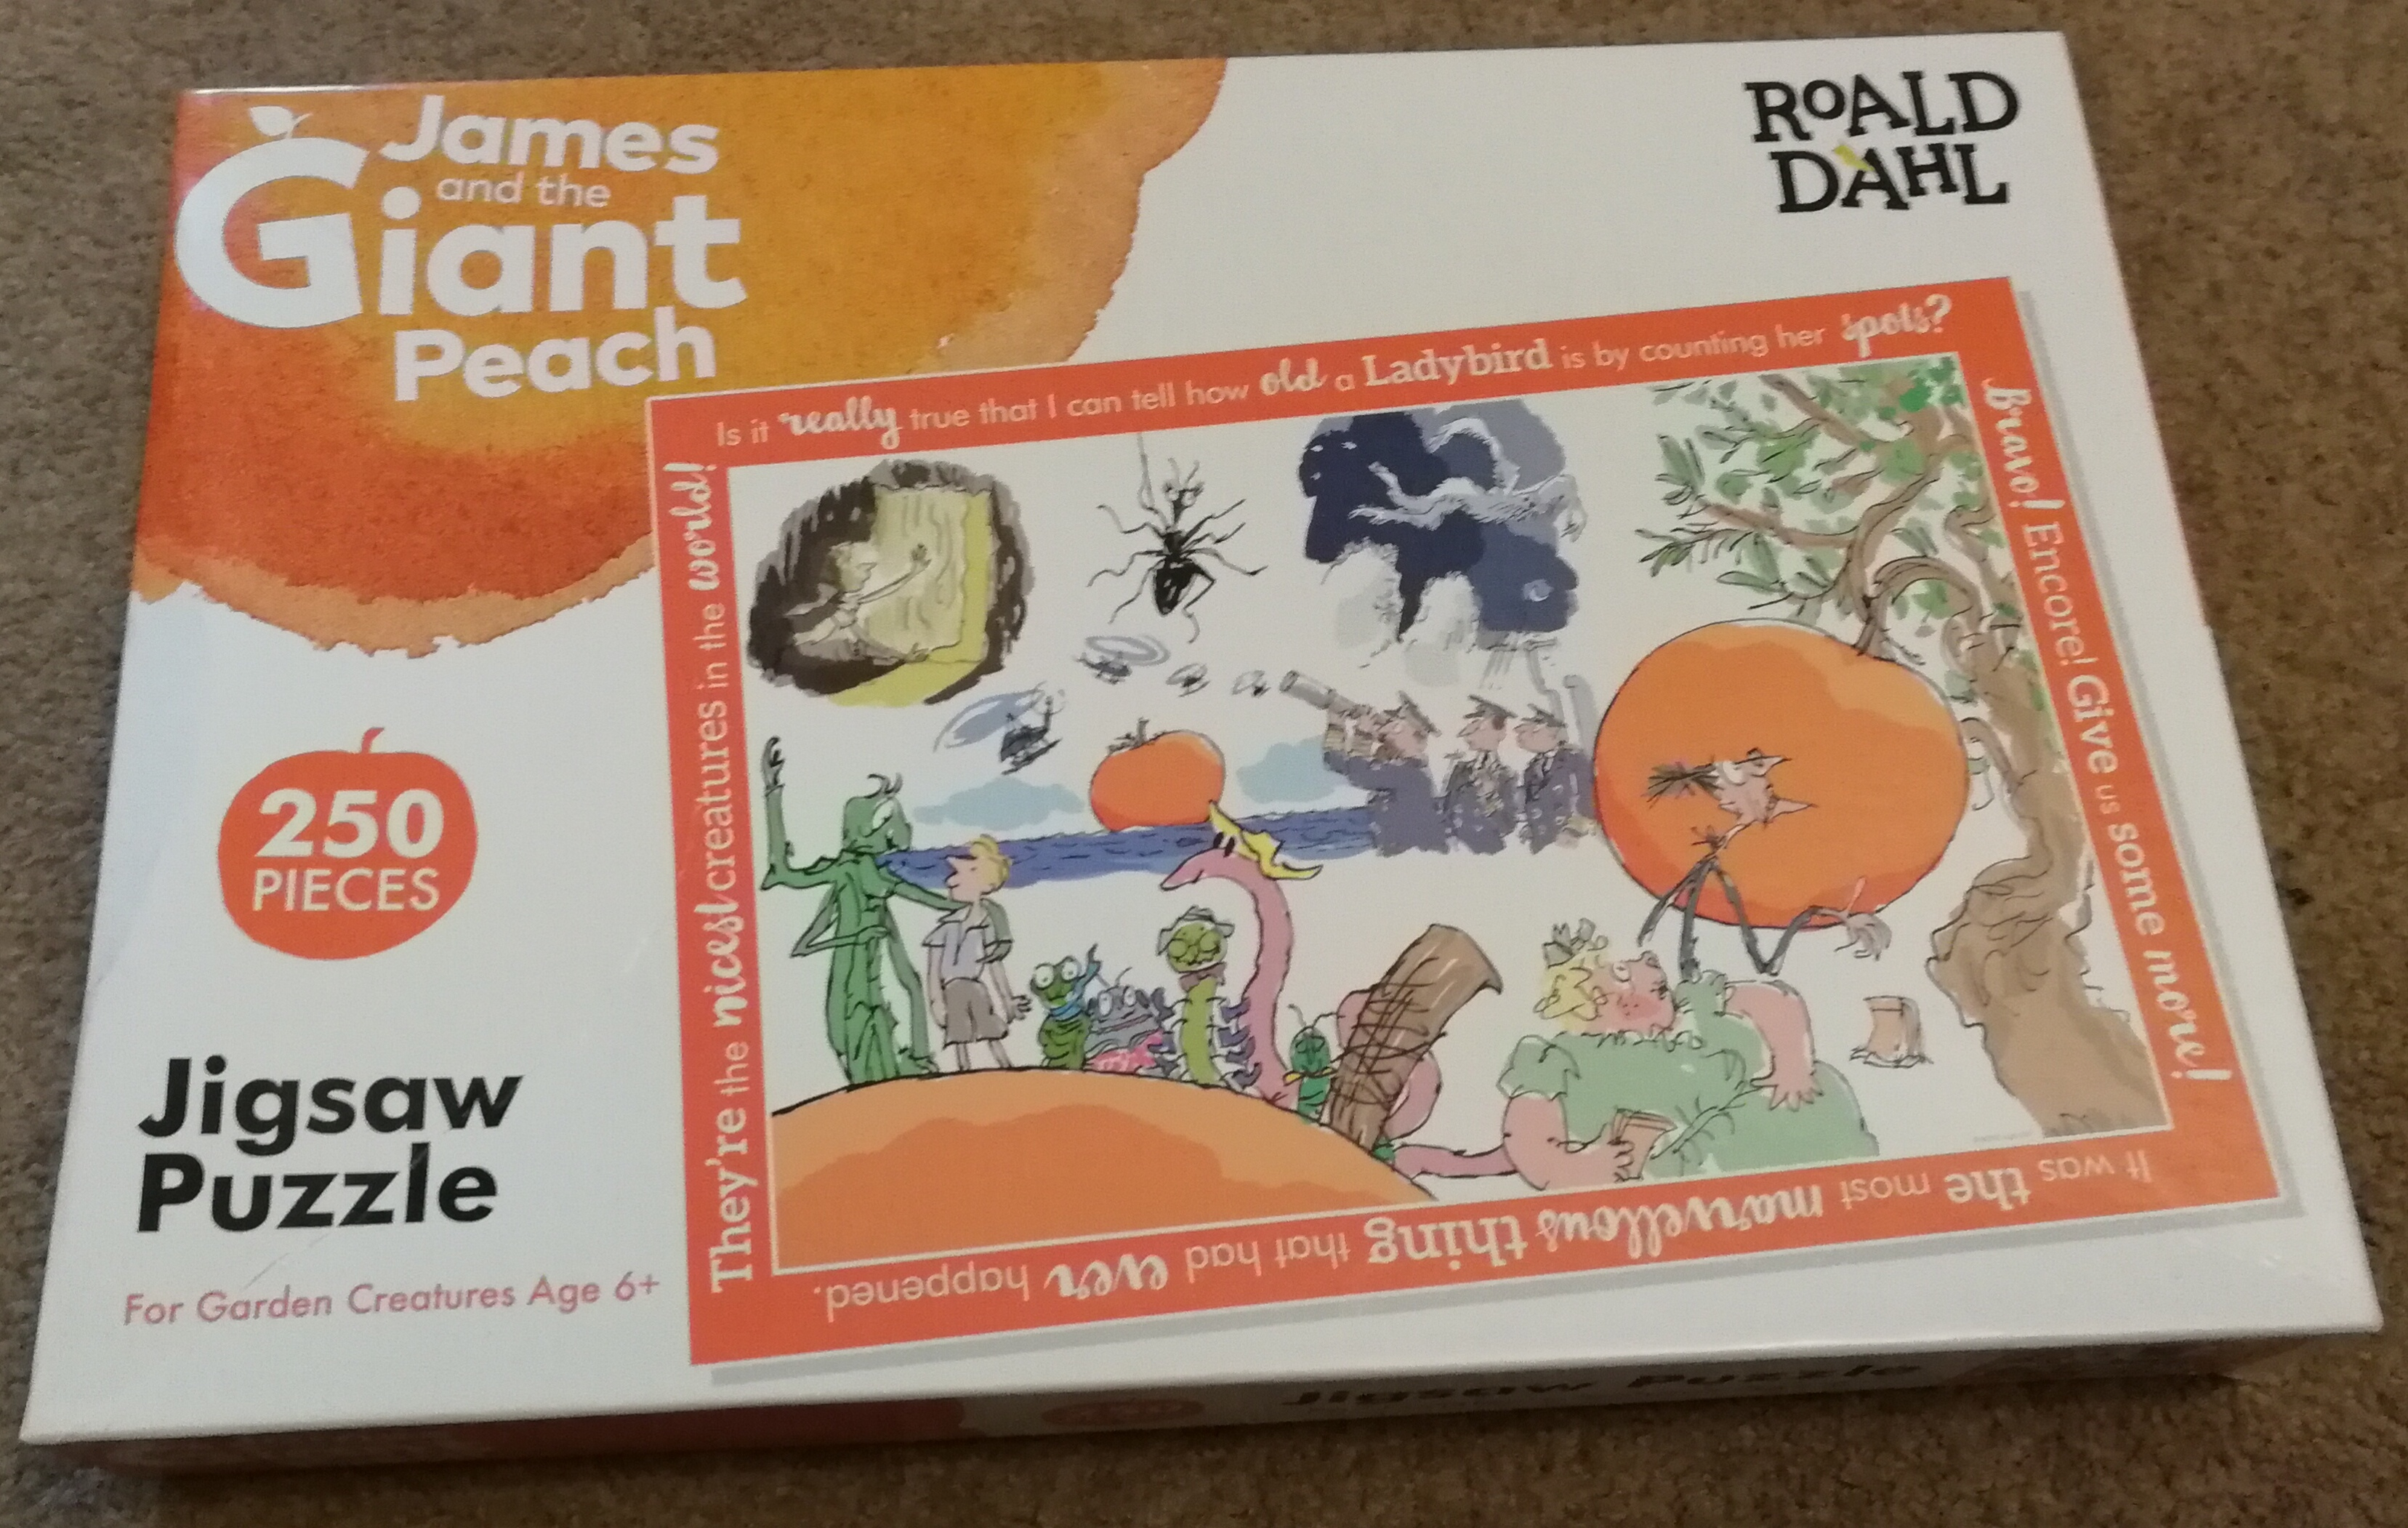 James and the giant peach 250 piece puzzle box